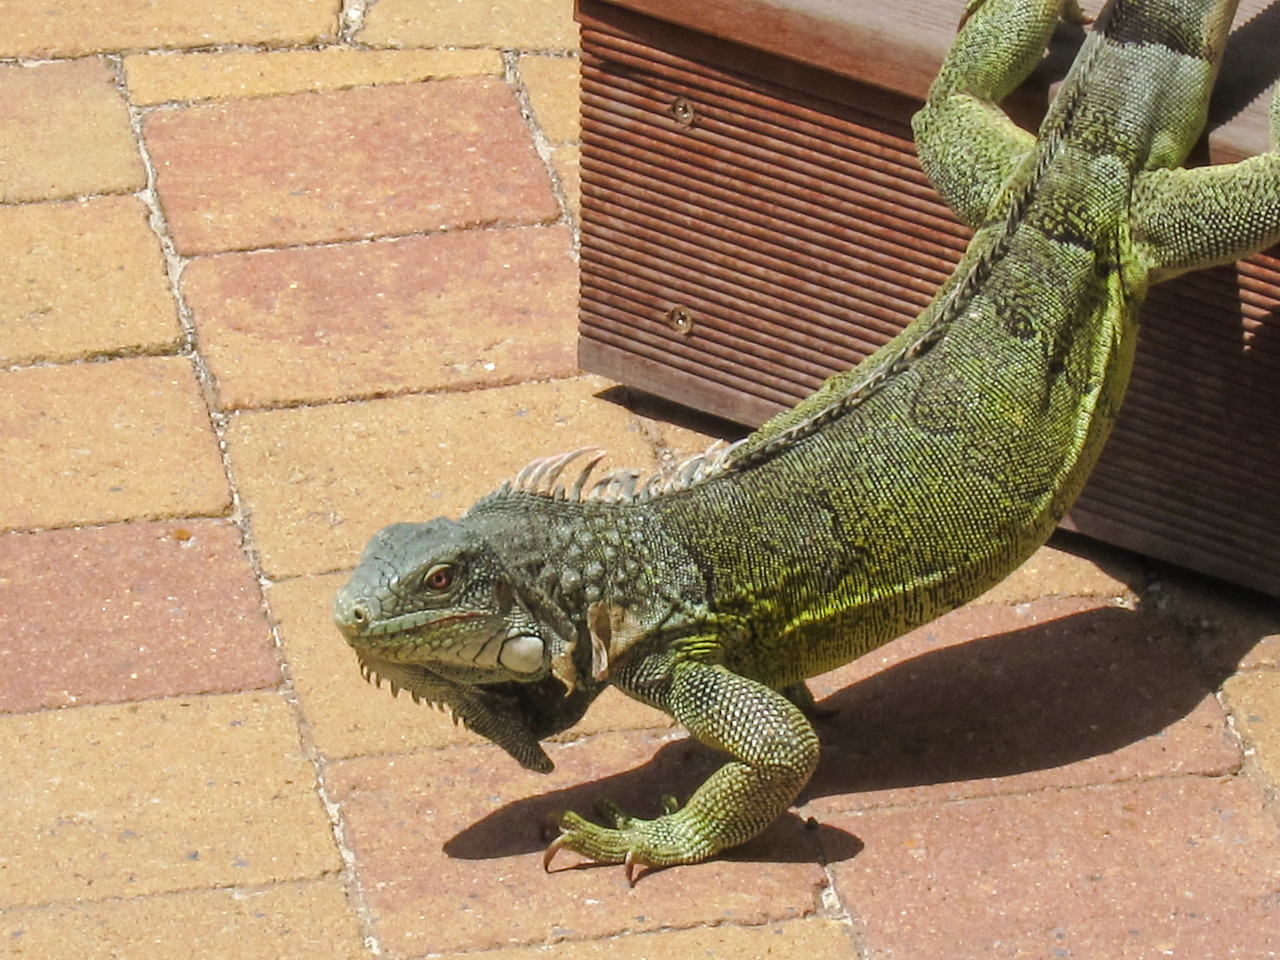 Iguana returning from the bar, Lions Dive & Beach Resort Curaçao - February 2013